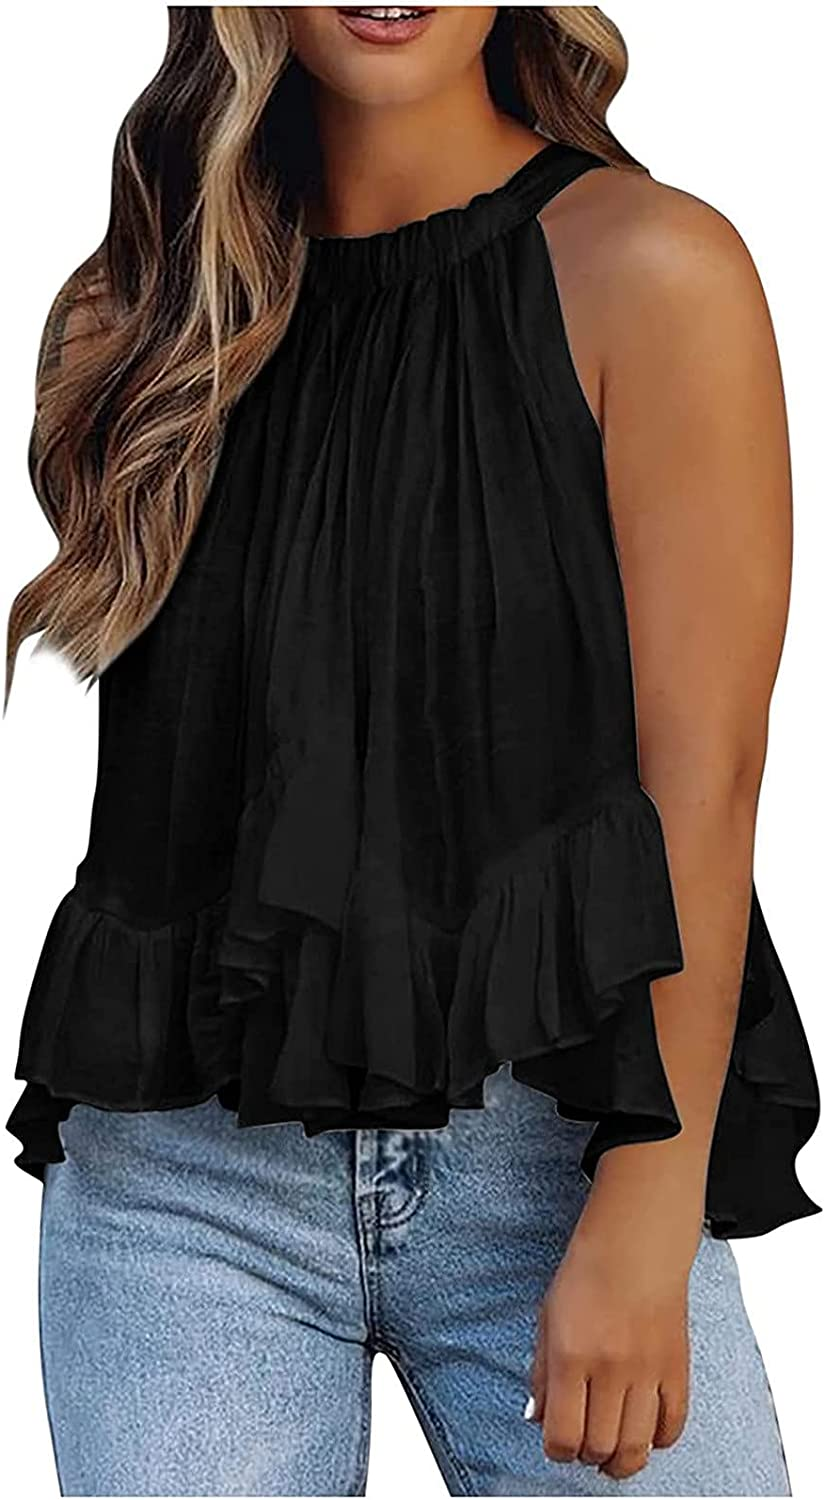 Women's Sleeveless Casual Shirt Summer Halter Neck Tank Tops Pleated Solid Color Camisole Cute Tee Tops